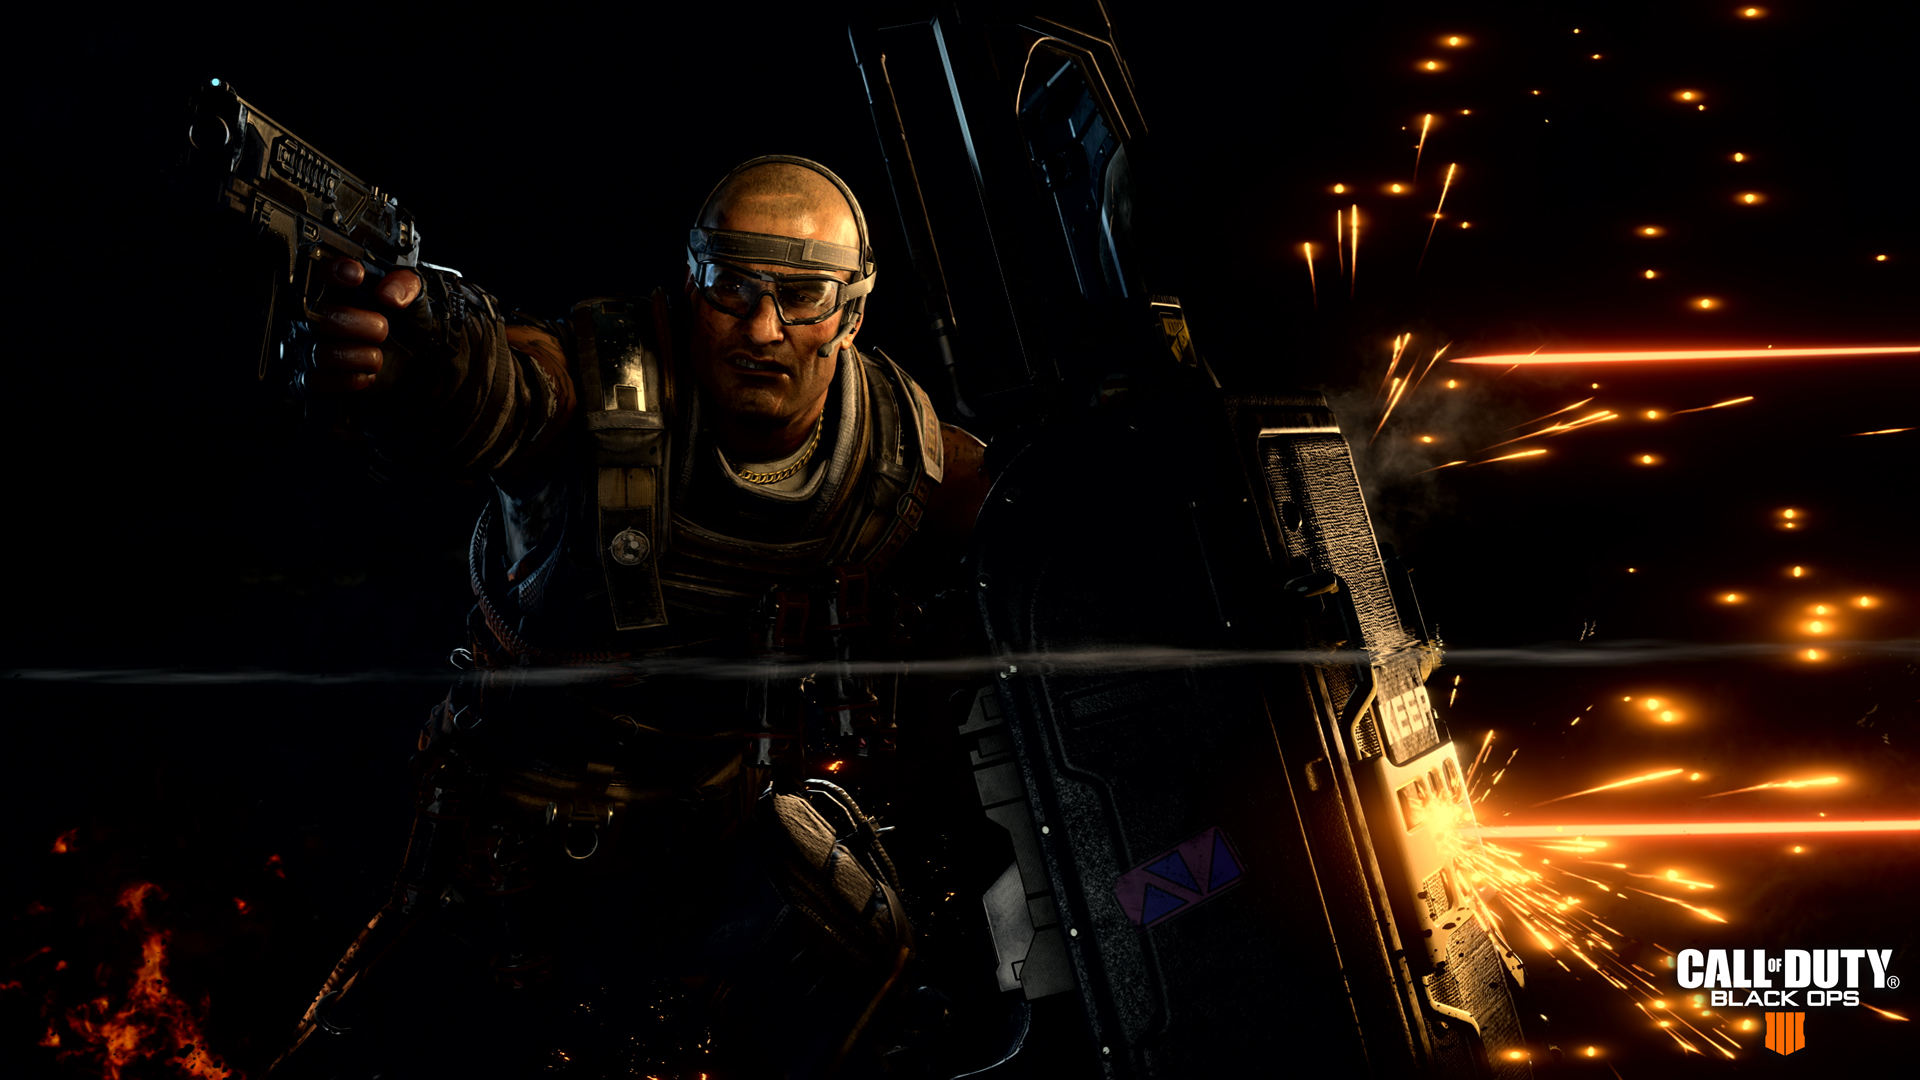 Call of Duty Black Ops 4 Screenshots #2 - Bild: Activision